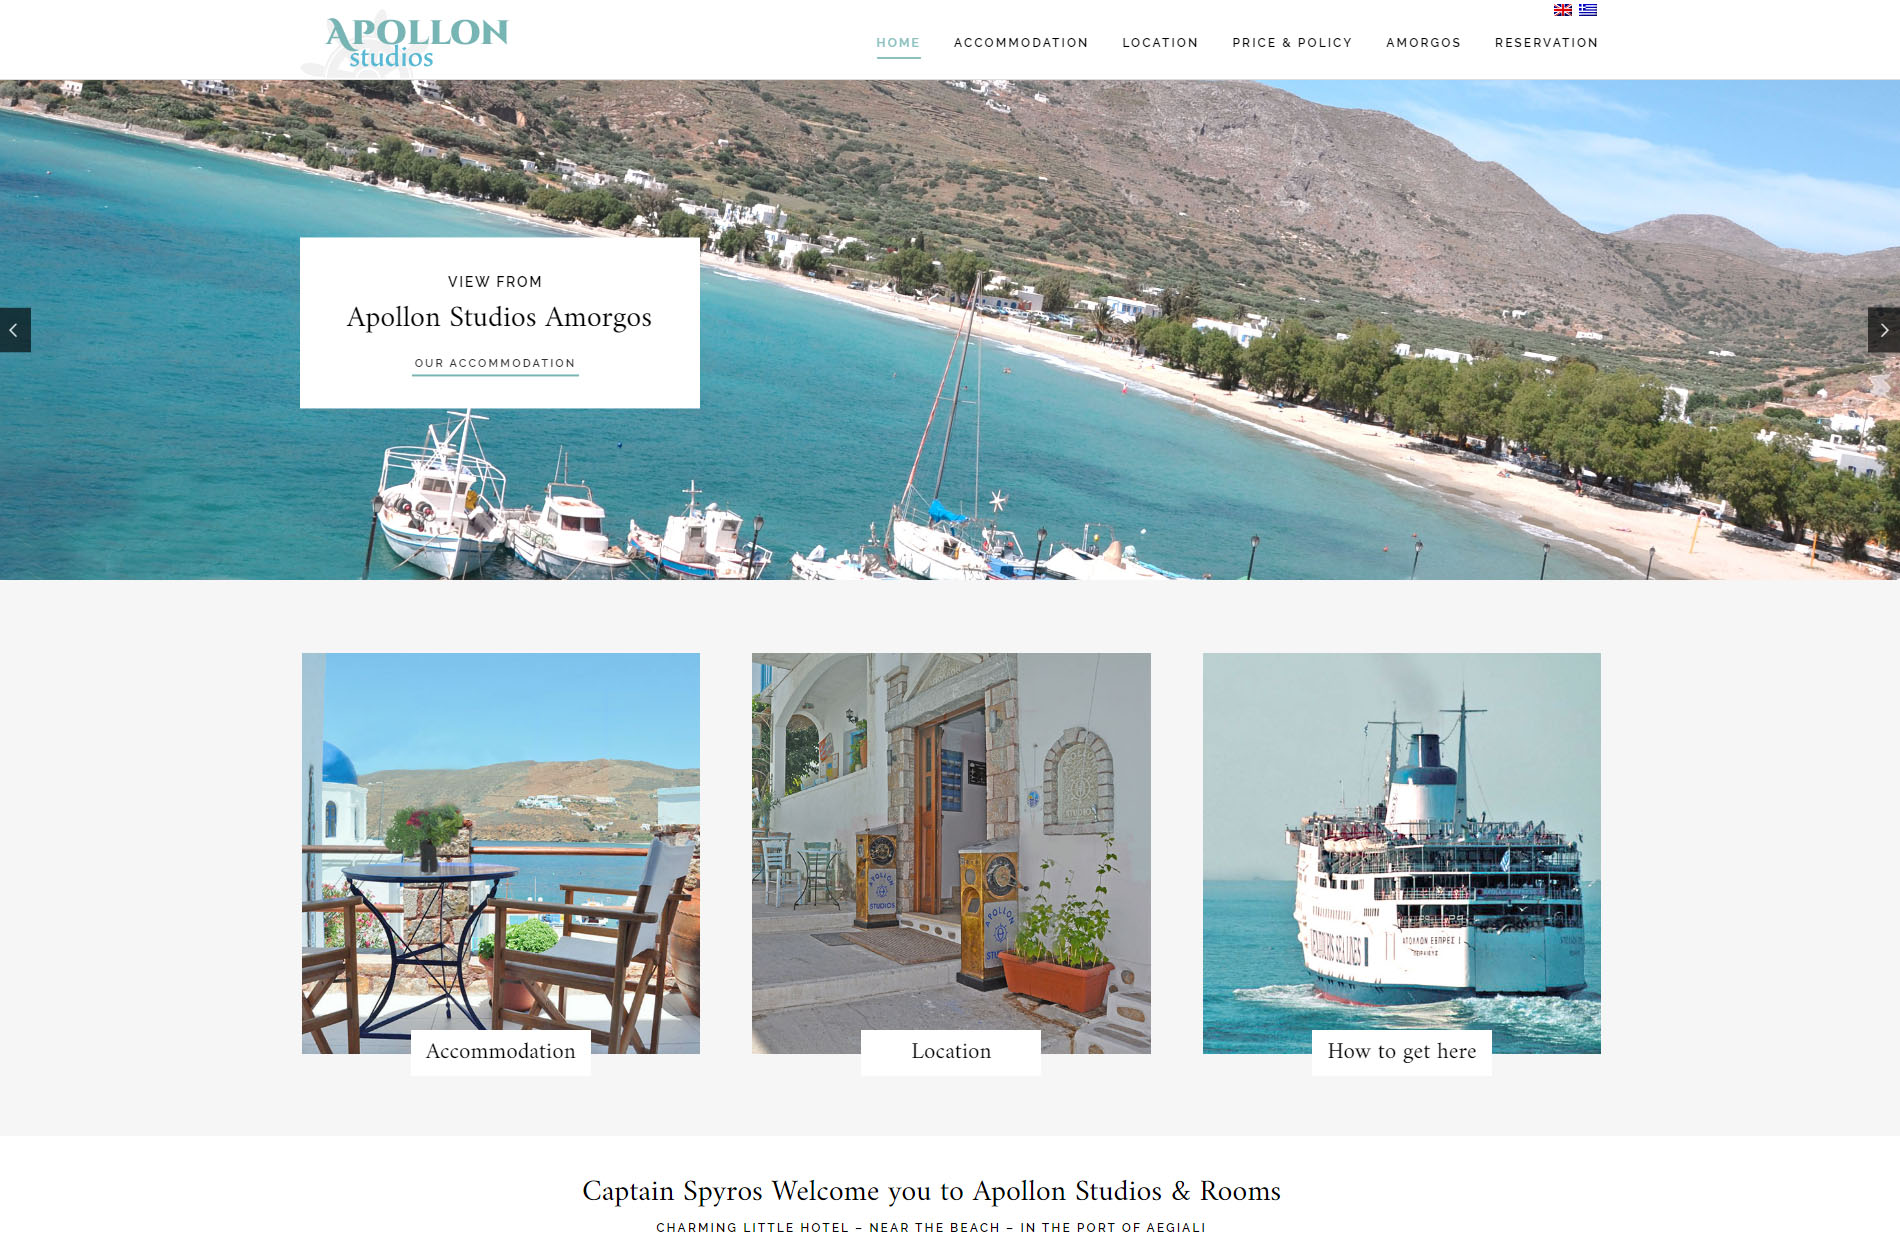 Apollon Studios Amorgos Web Design